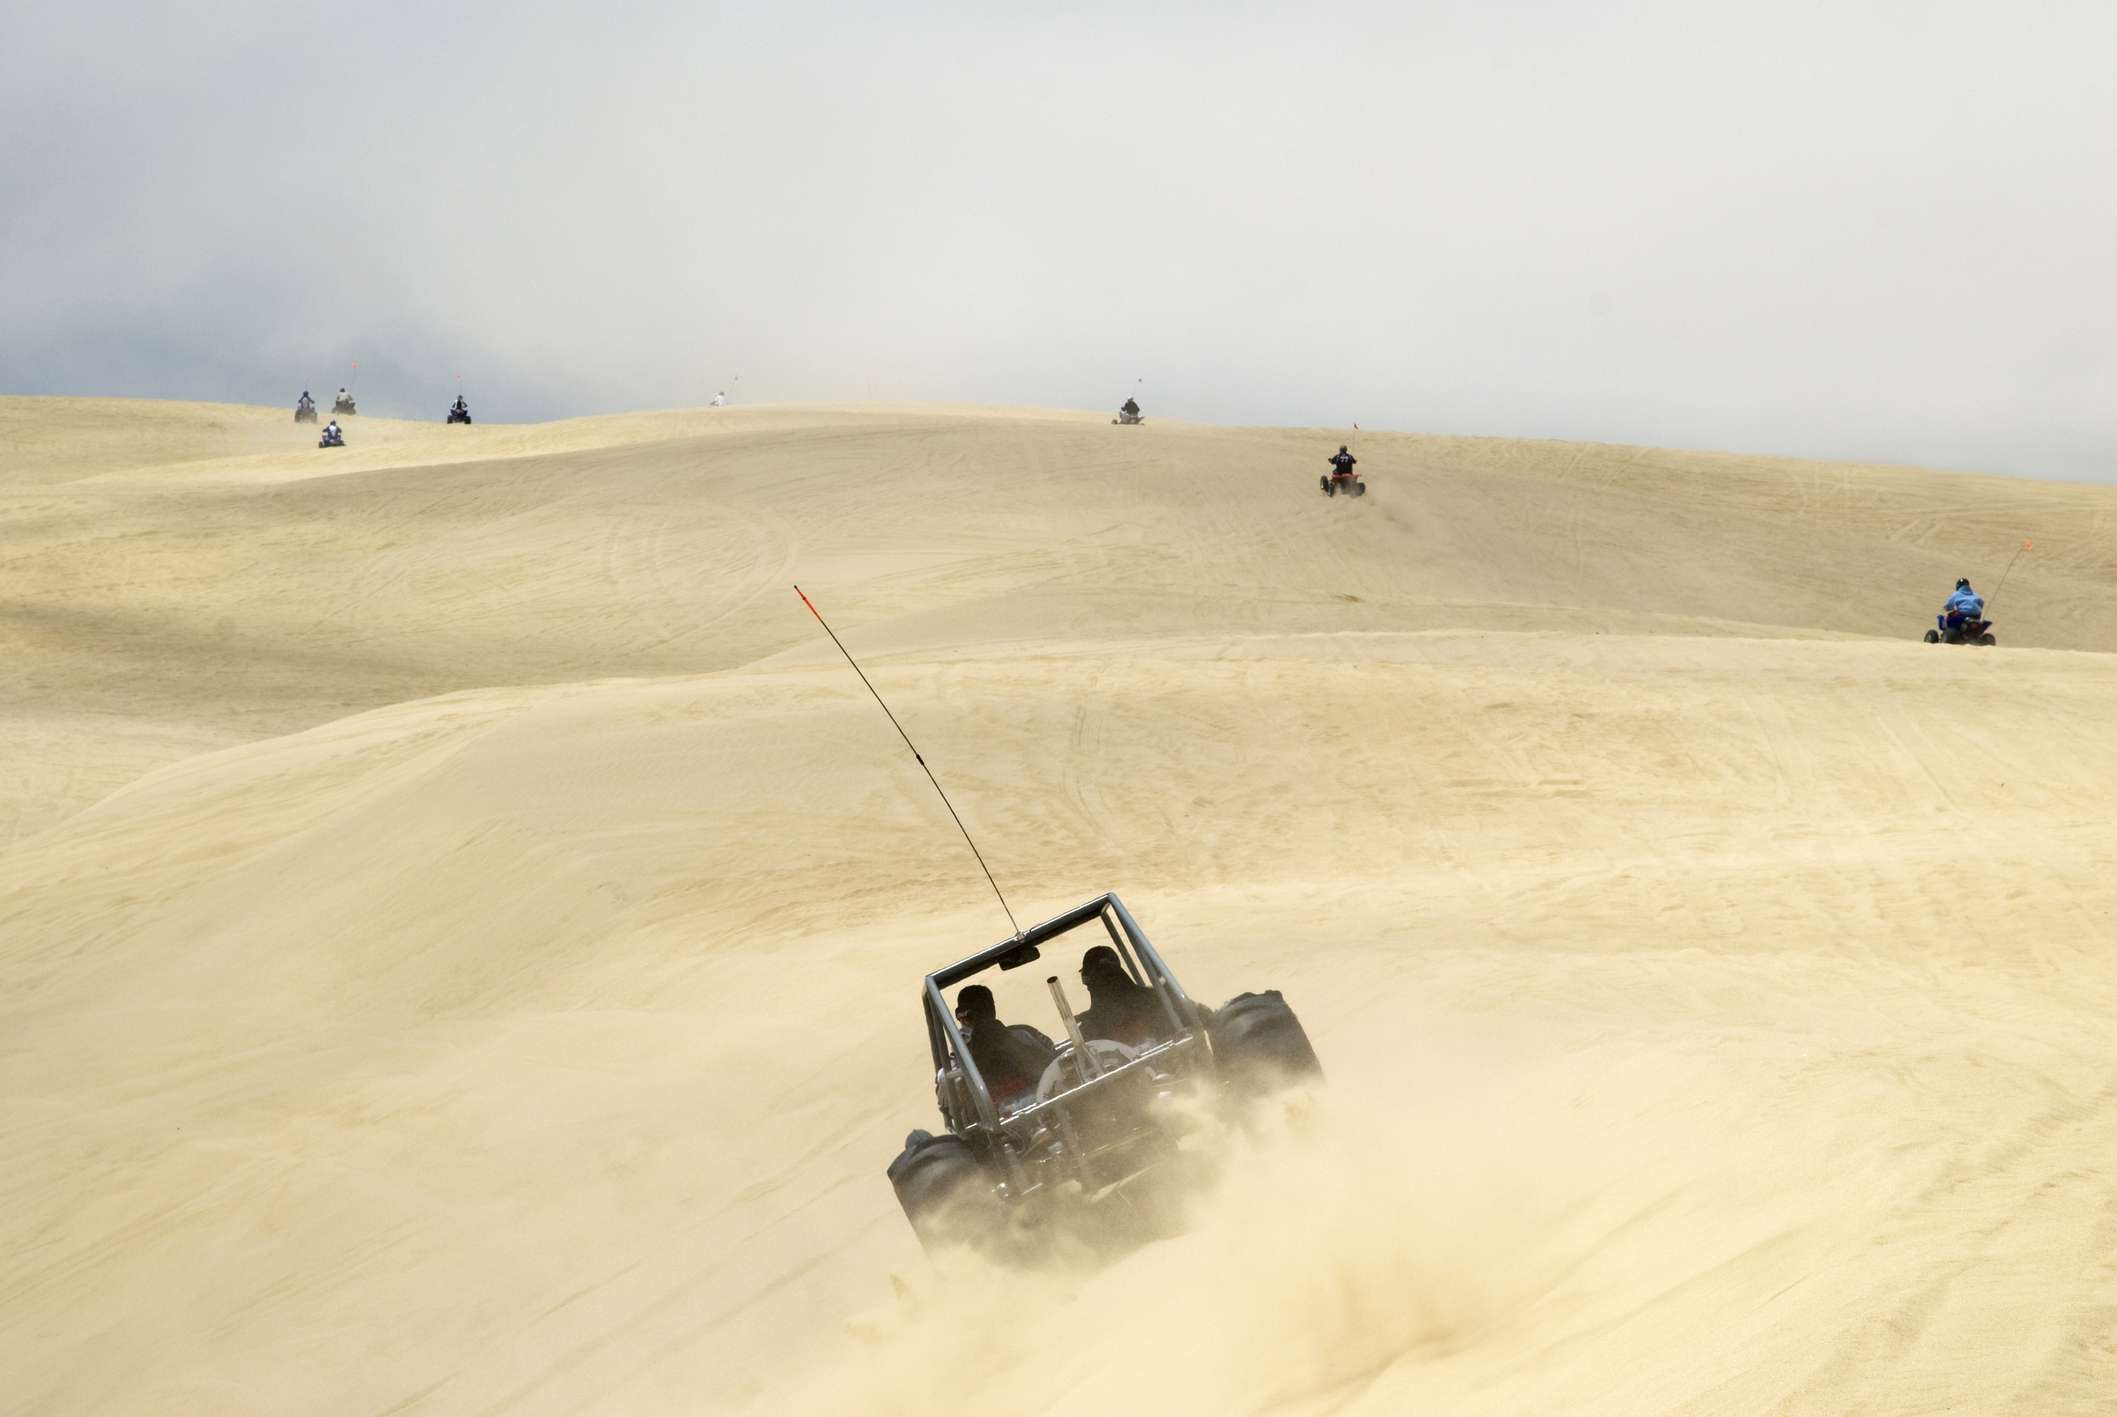 Off road vehicles at Pismo Beach Dunes, part of the larger The Guadalupe-Nipomo Dunes